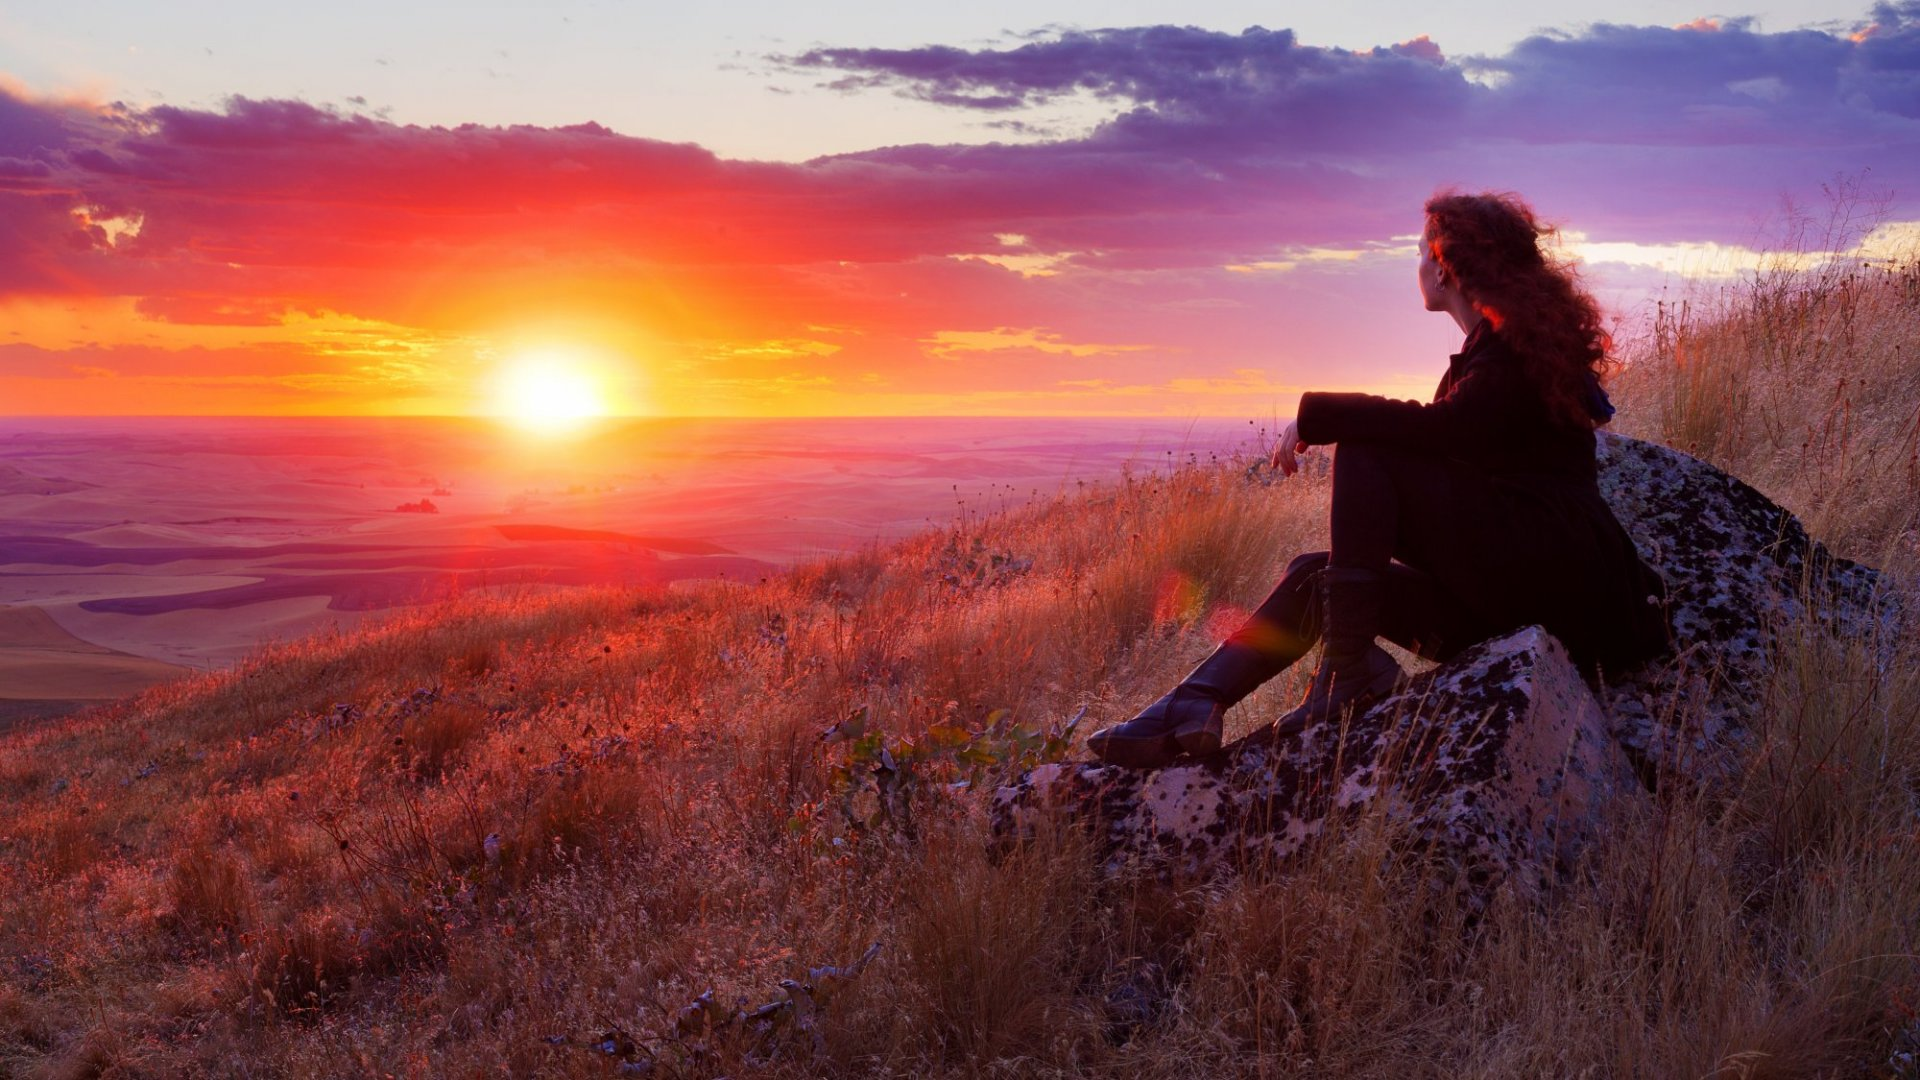 Want to Live a More Fulfilled Life? Avoid the No. 1 Regret of the Dying